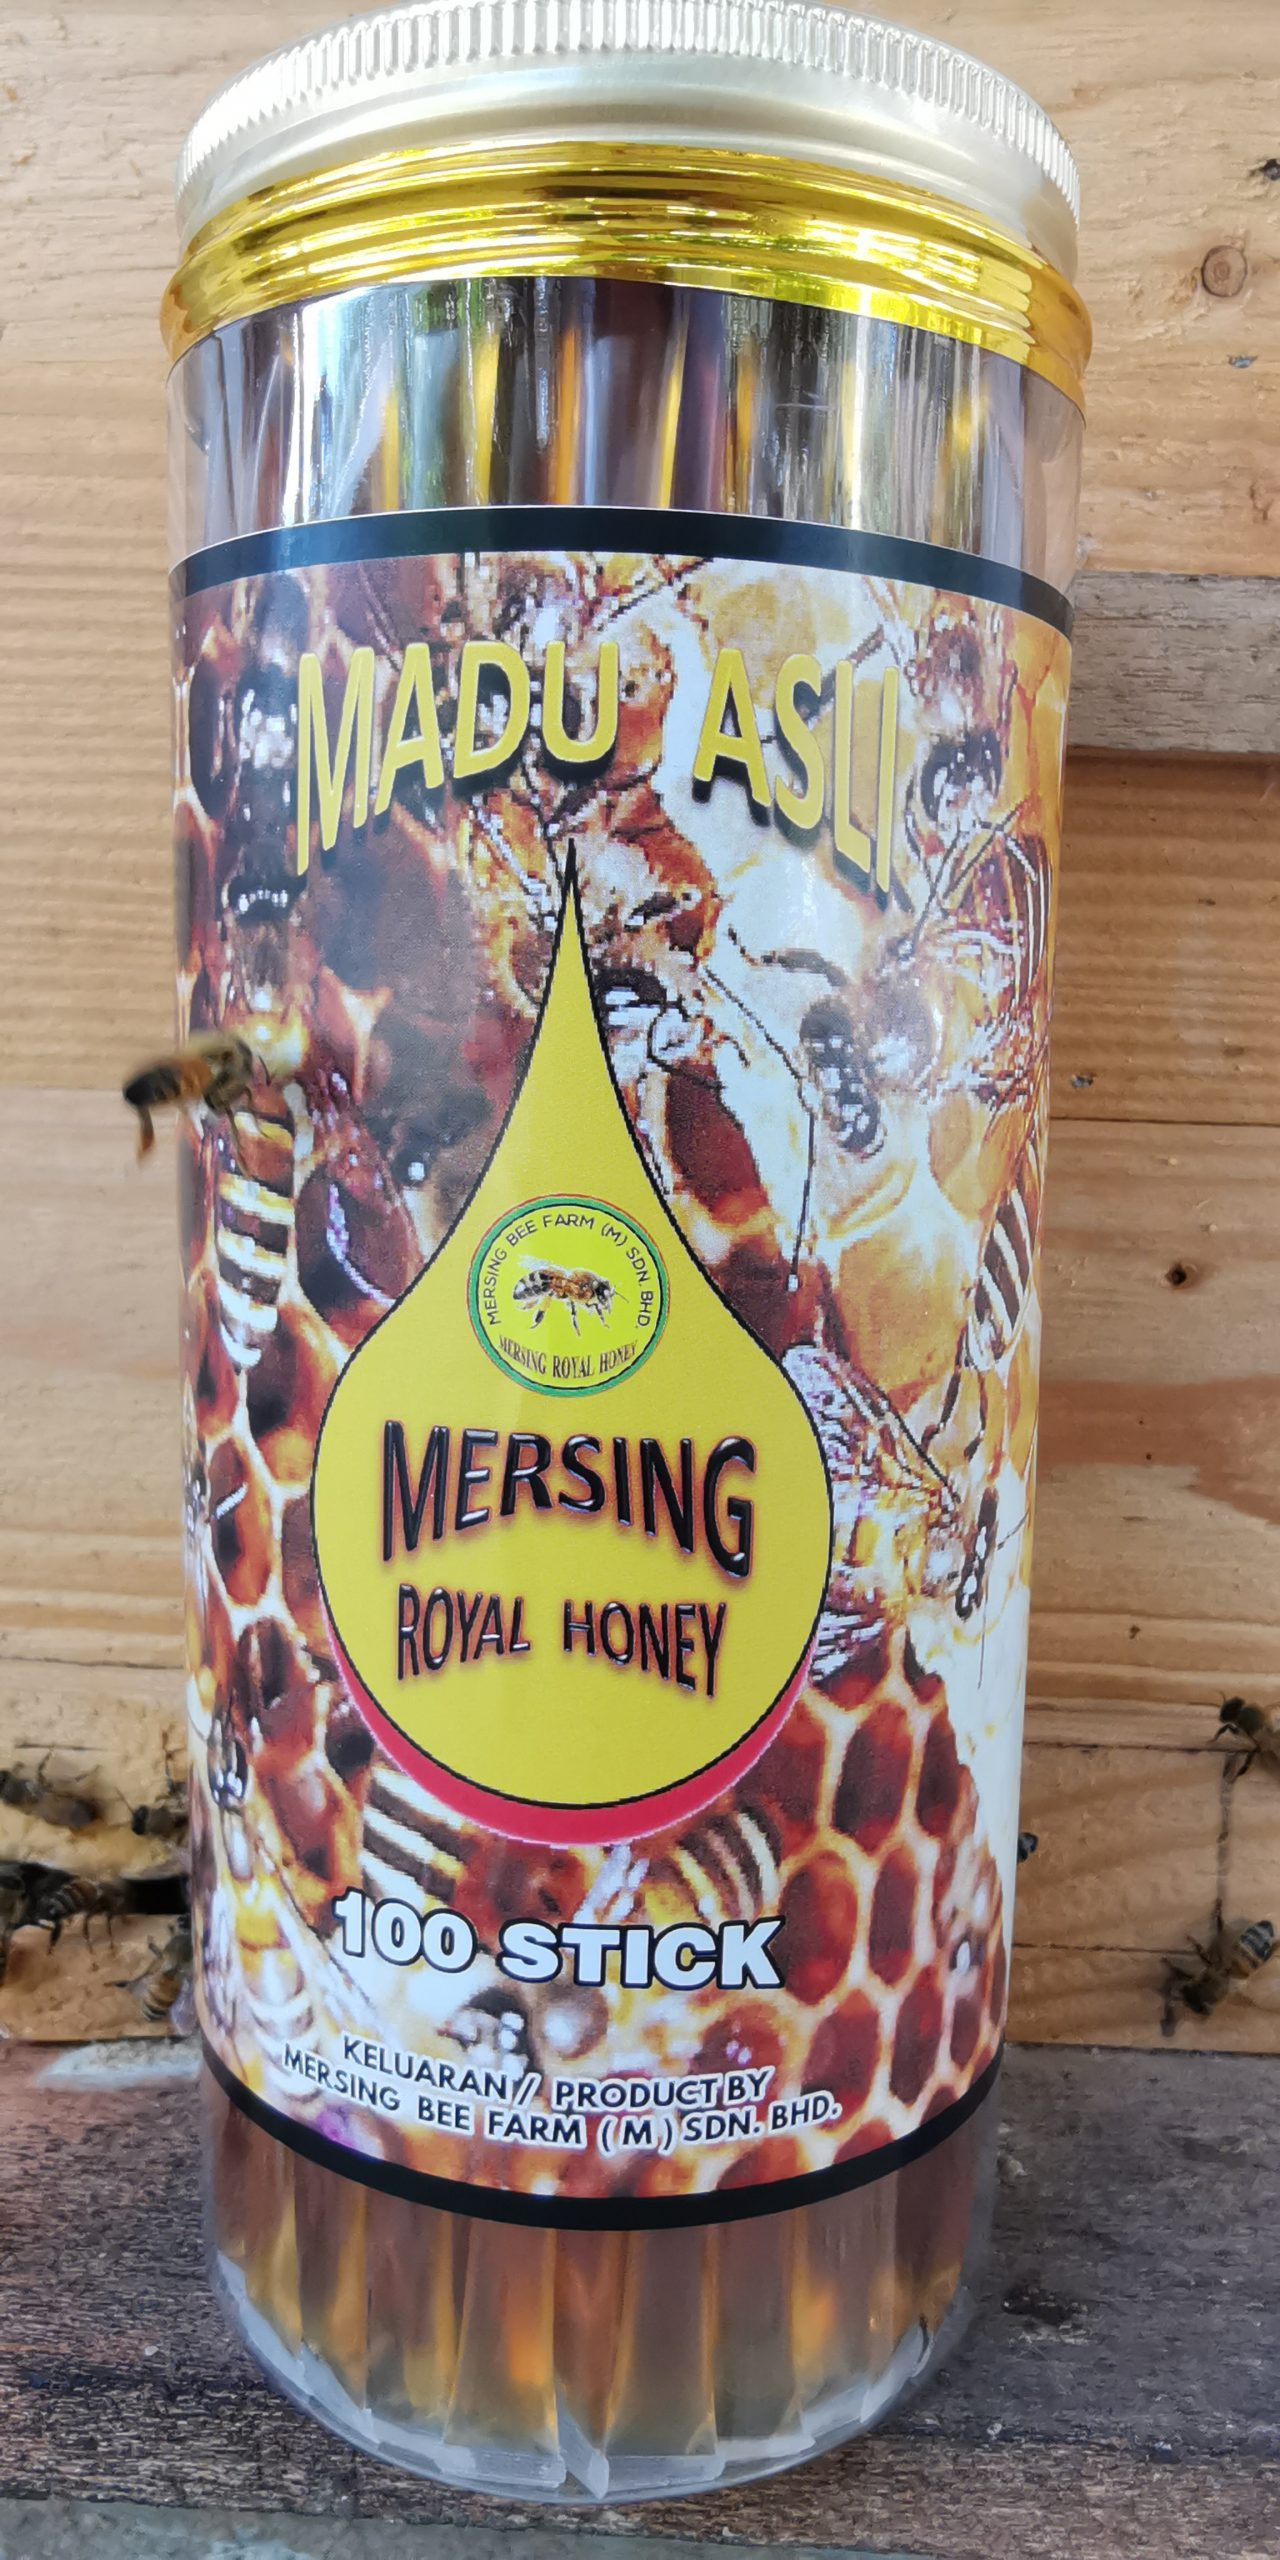 MADU ASLI MERSING ROYAL HONEY 100 STICKS RM 106